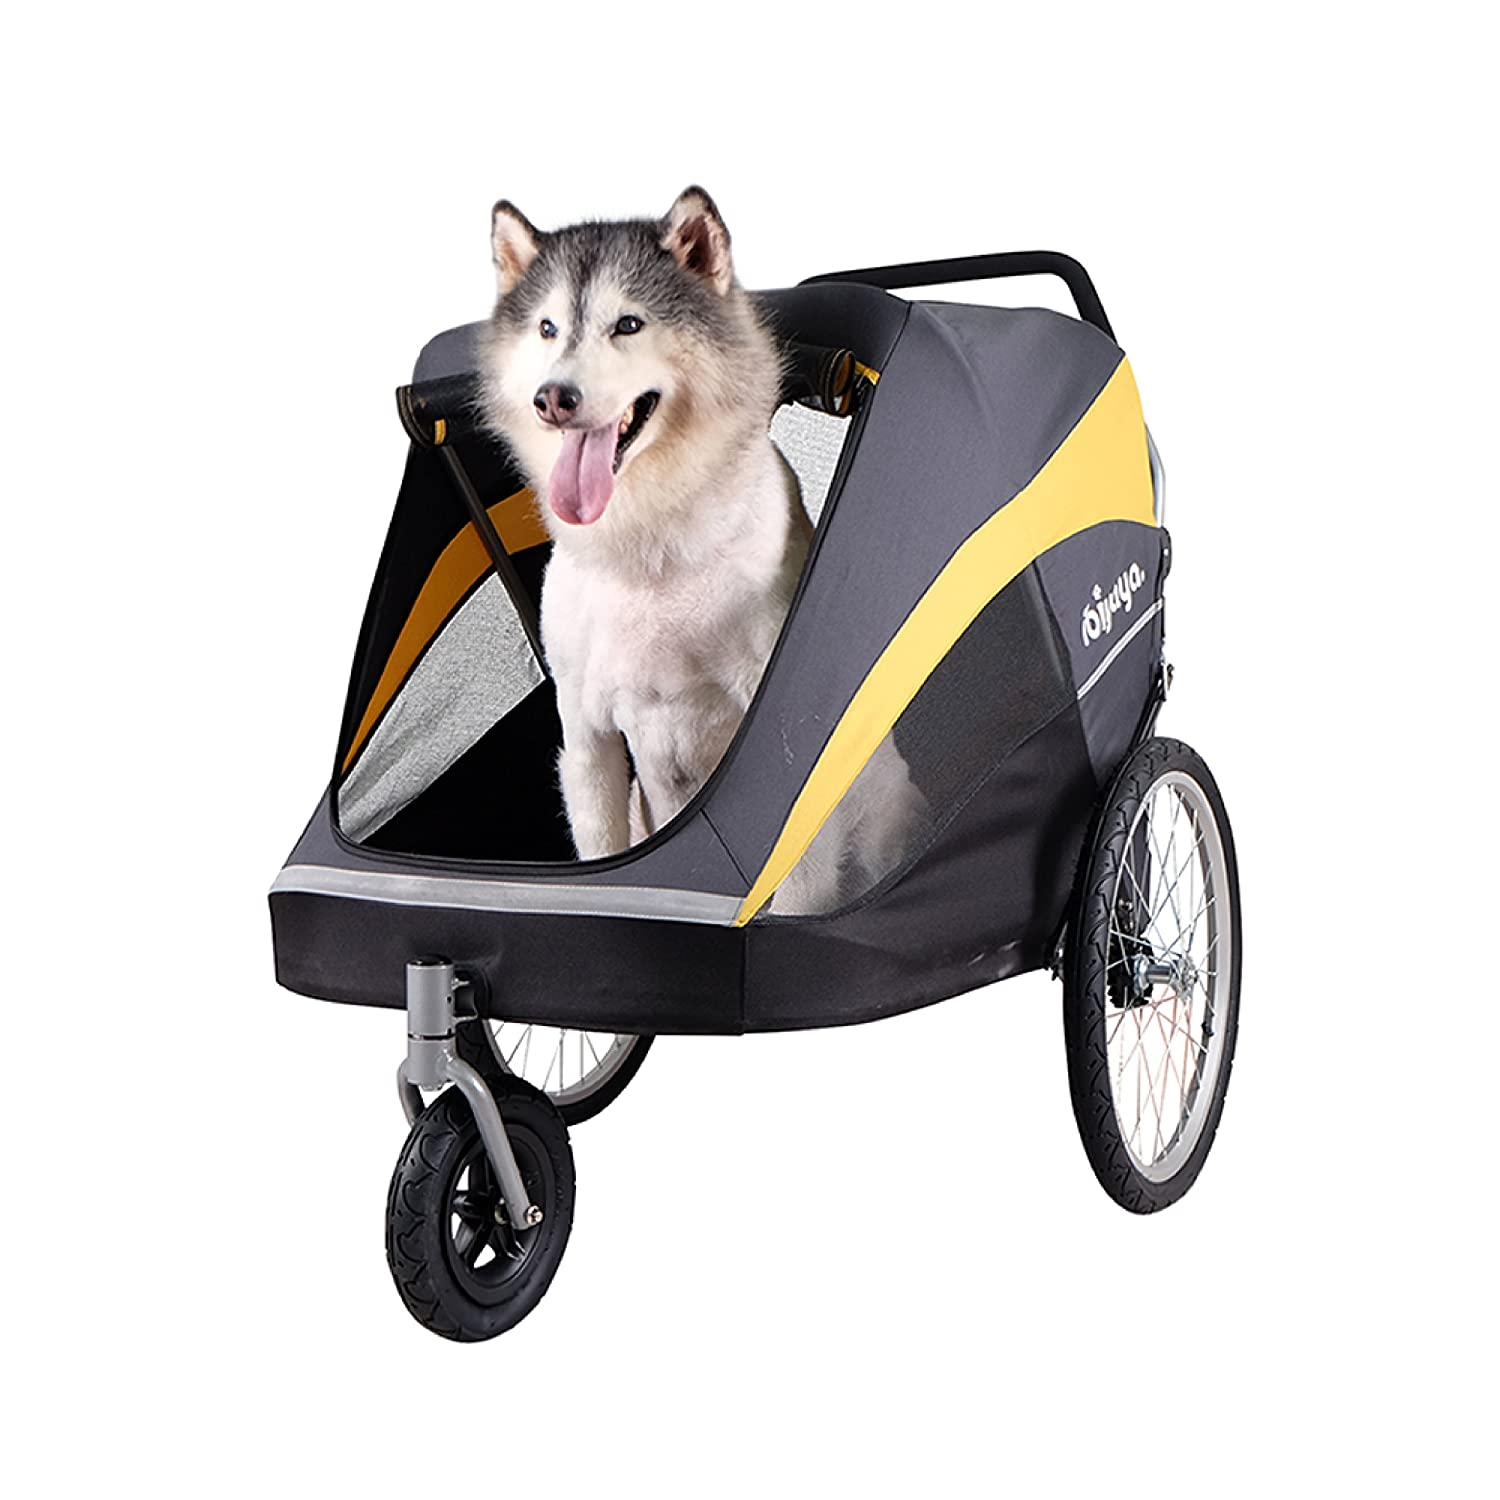 Large Pet Stroller for one Large or Multiple Medium Dogs with air Filled tire Suspension and Aluminum Frames, rain Cover Included